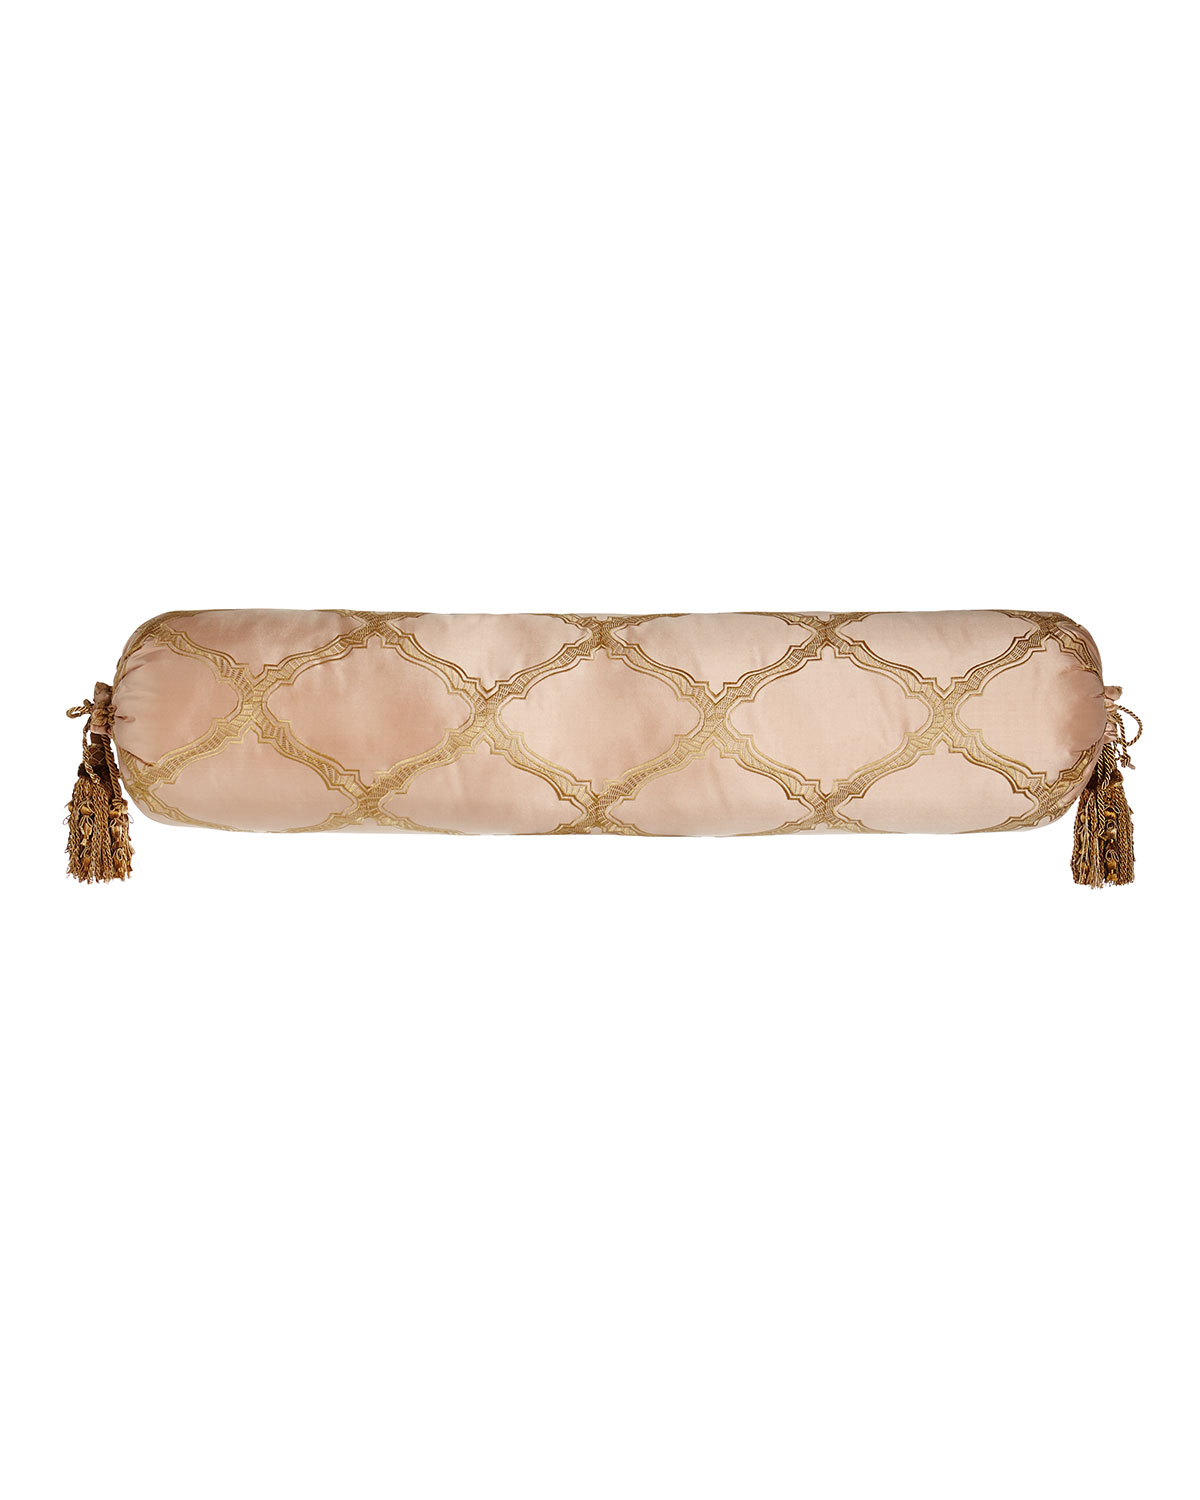 Extra Long Versailles Bolster Pillow With Tels